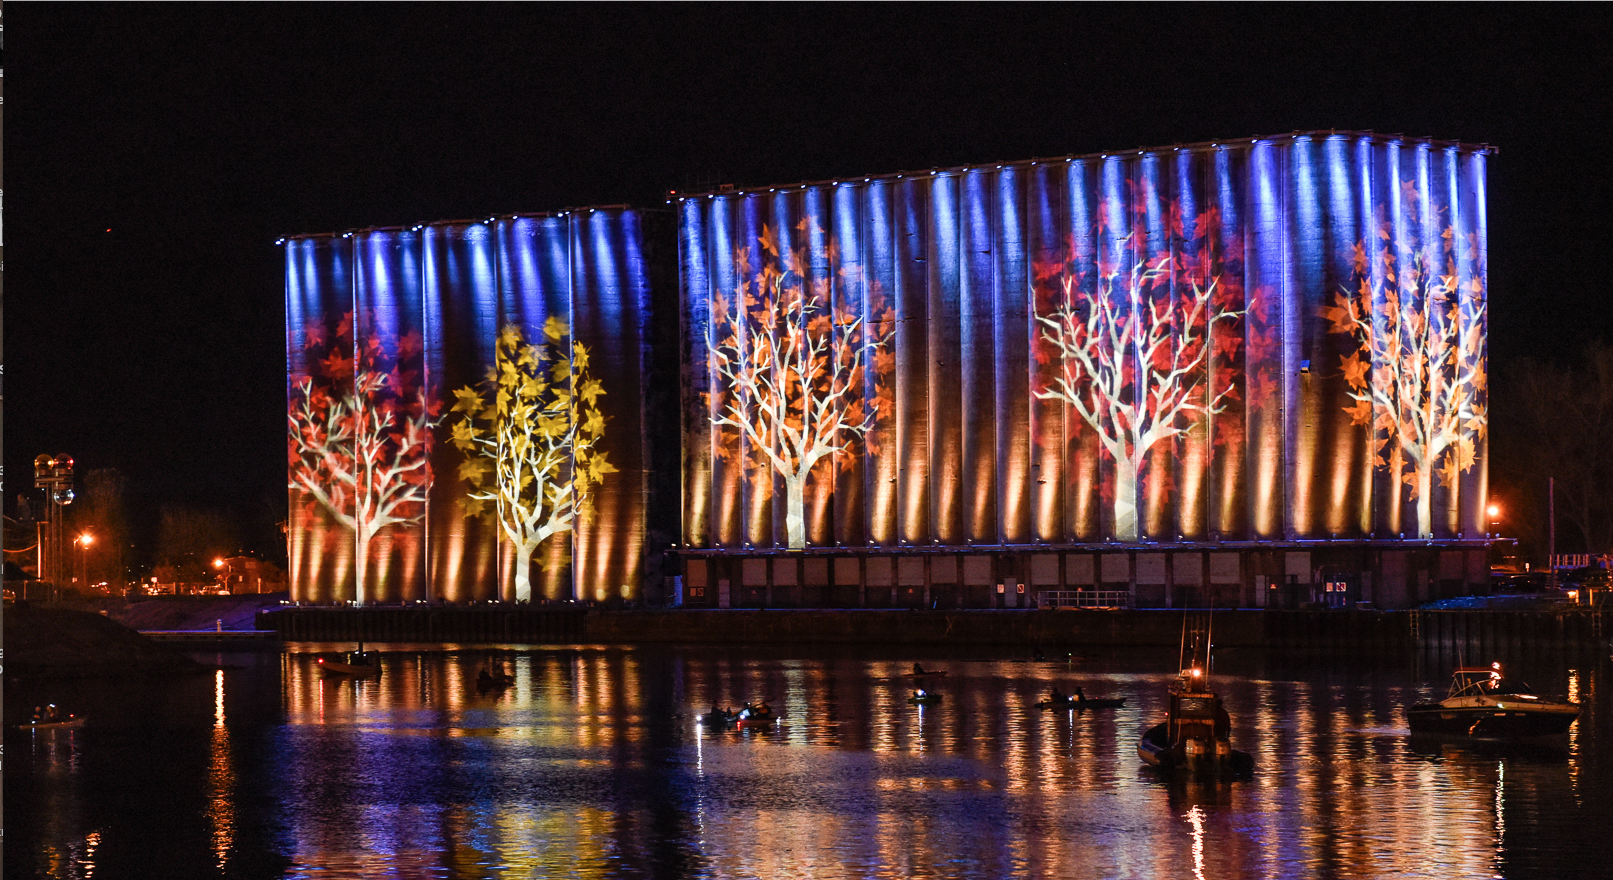 Buffalo's cement grain elevators have been turned into a unique screen for a nightly light show, that can be viewed from shore or by kayak. (photo credit: Joe Cascio)